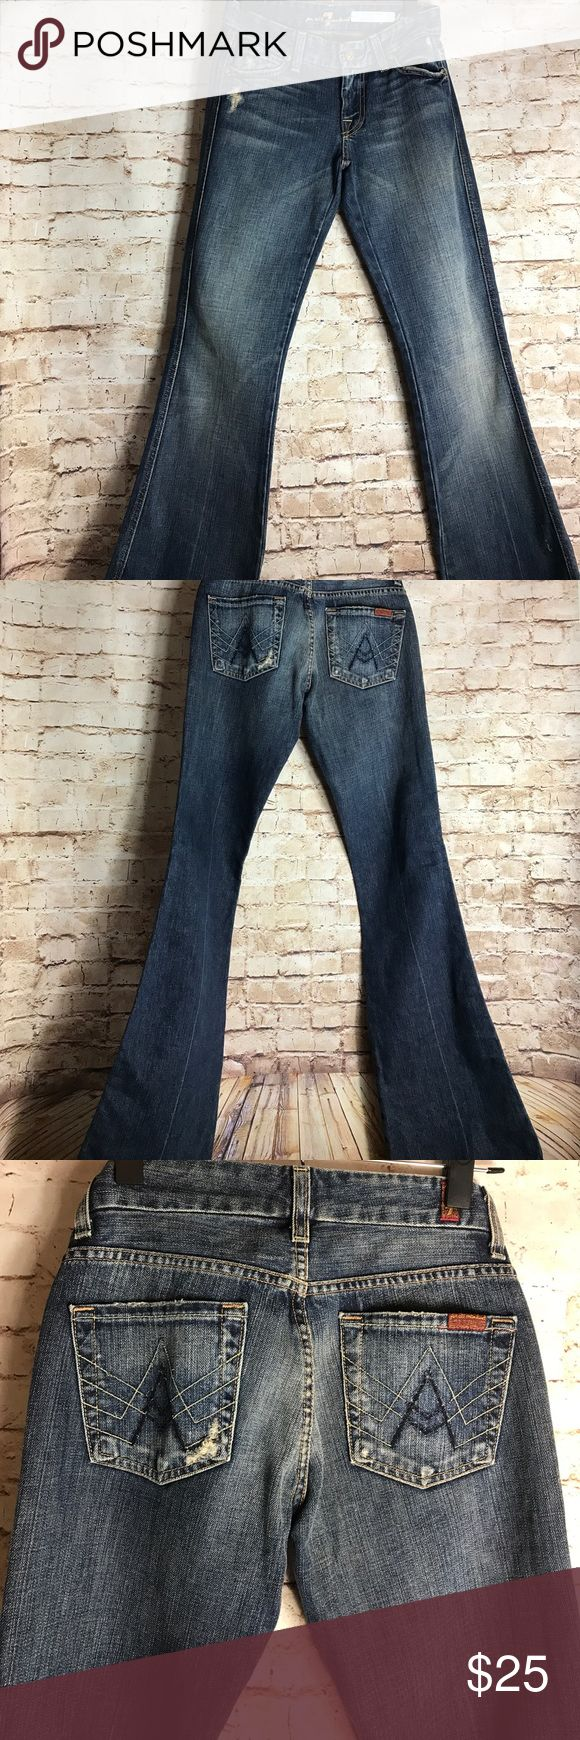 """✨7FAM✨ 7 For all Mankind womens jeans A Pocket med wash denim size 25  Good Pre-owned condition No rips, tears, marks or stains Please see pictures for details   Laying flat  Waist 14"""" Rise 8"""" Inseam 33"""" 7 For All Mankind Jeans"""